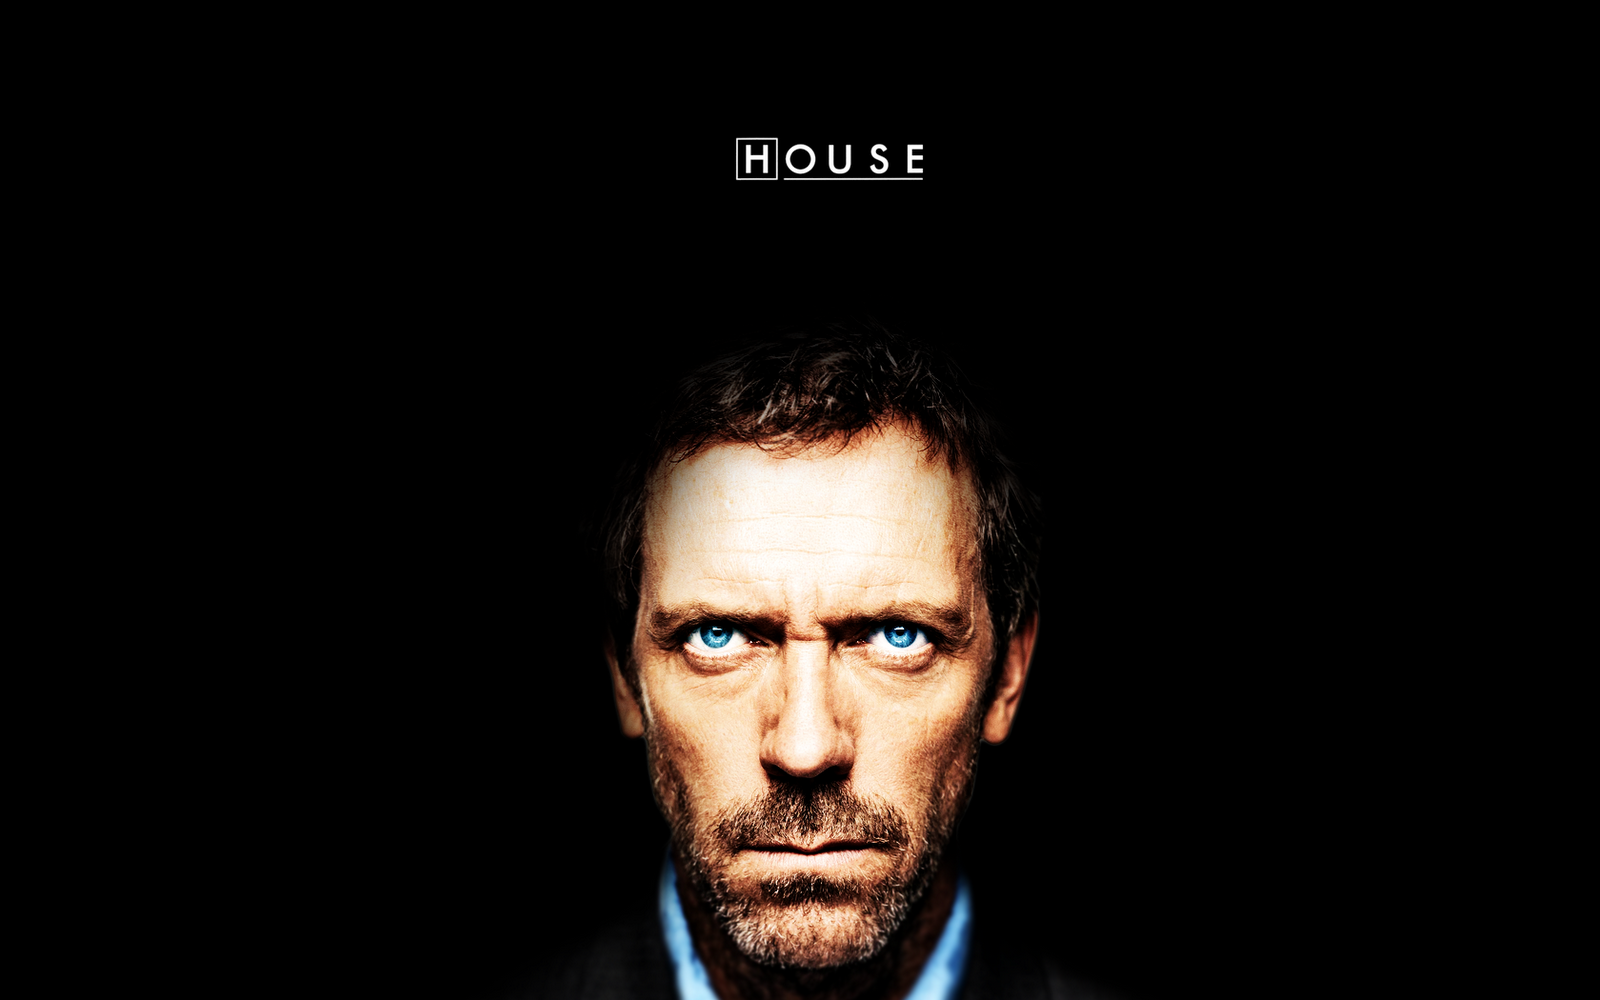 Dr House Hugh Laurie HD Wallpapers Photos Download Wallpapers in 1600x1000